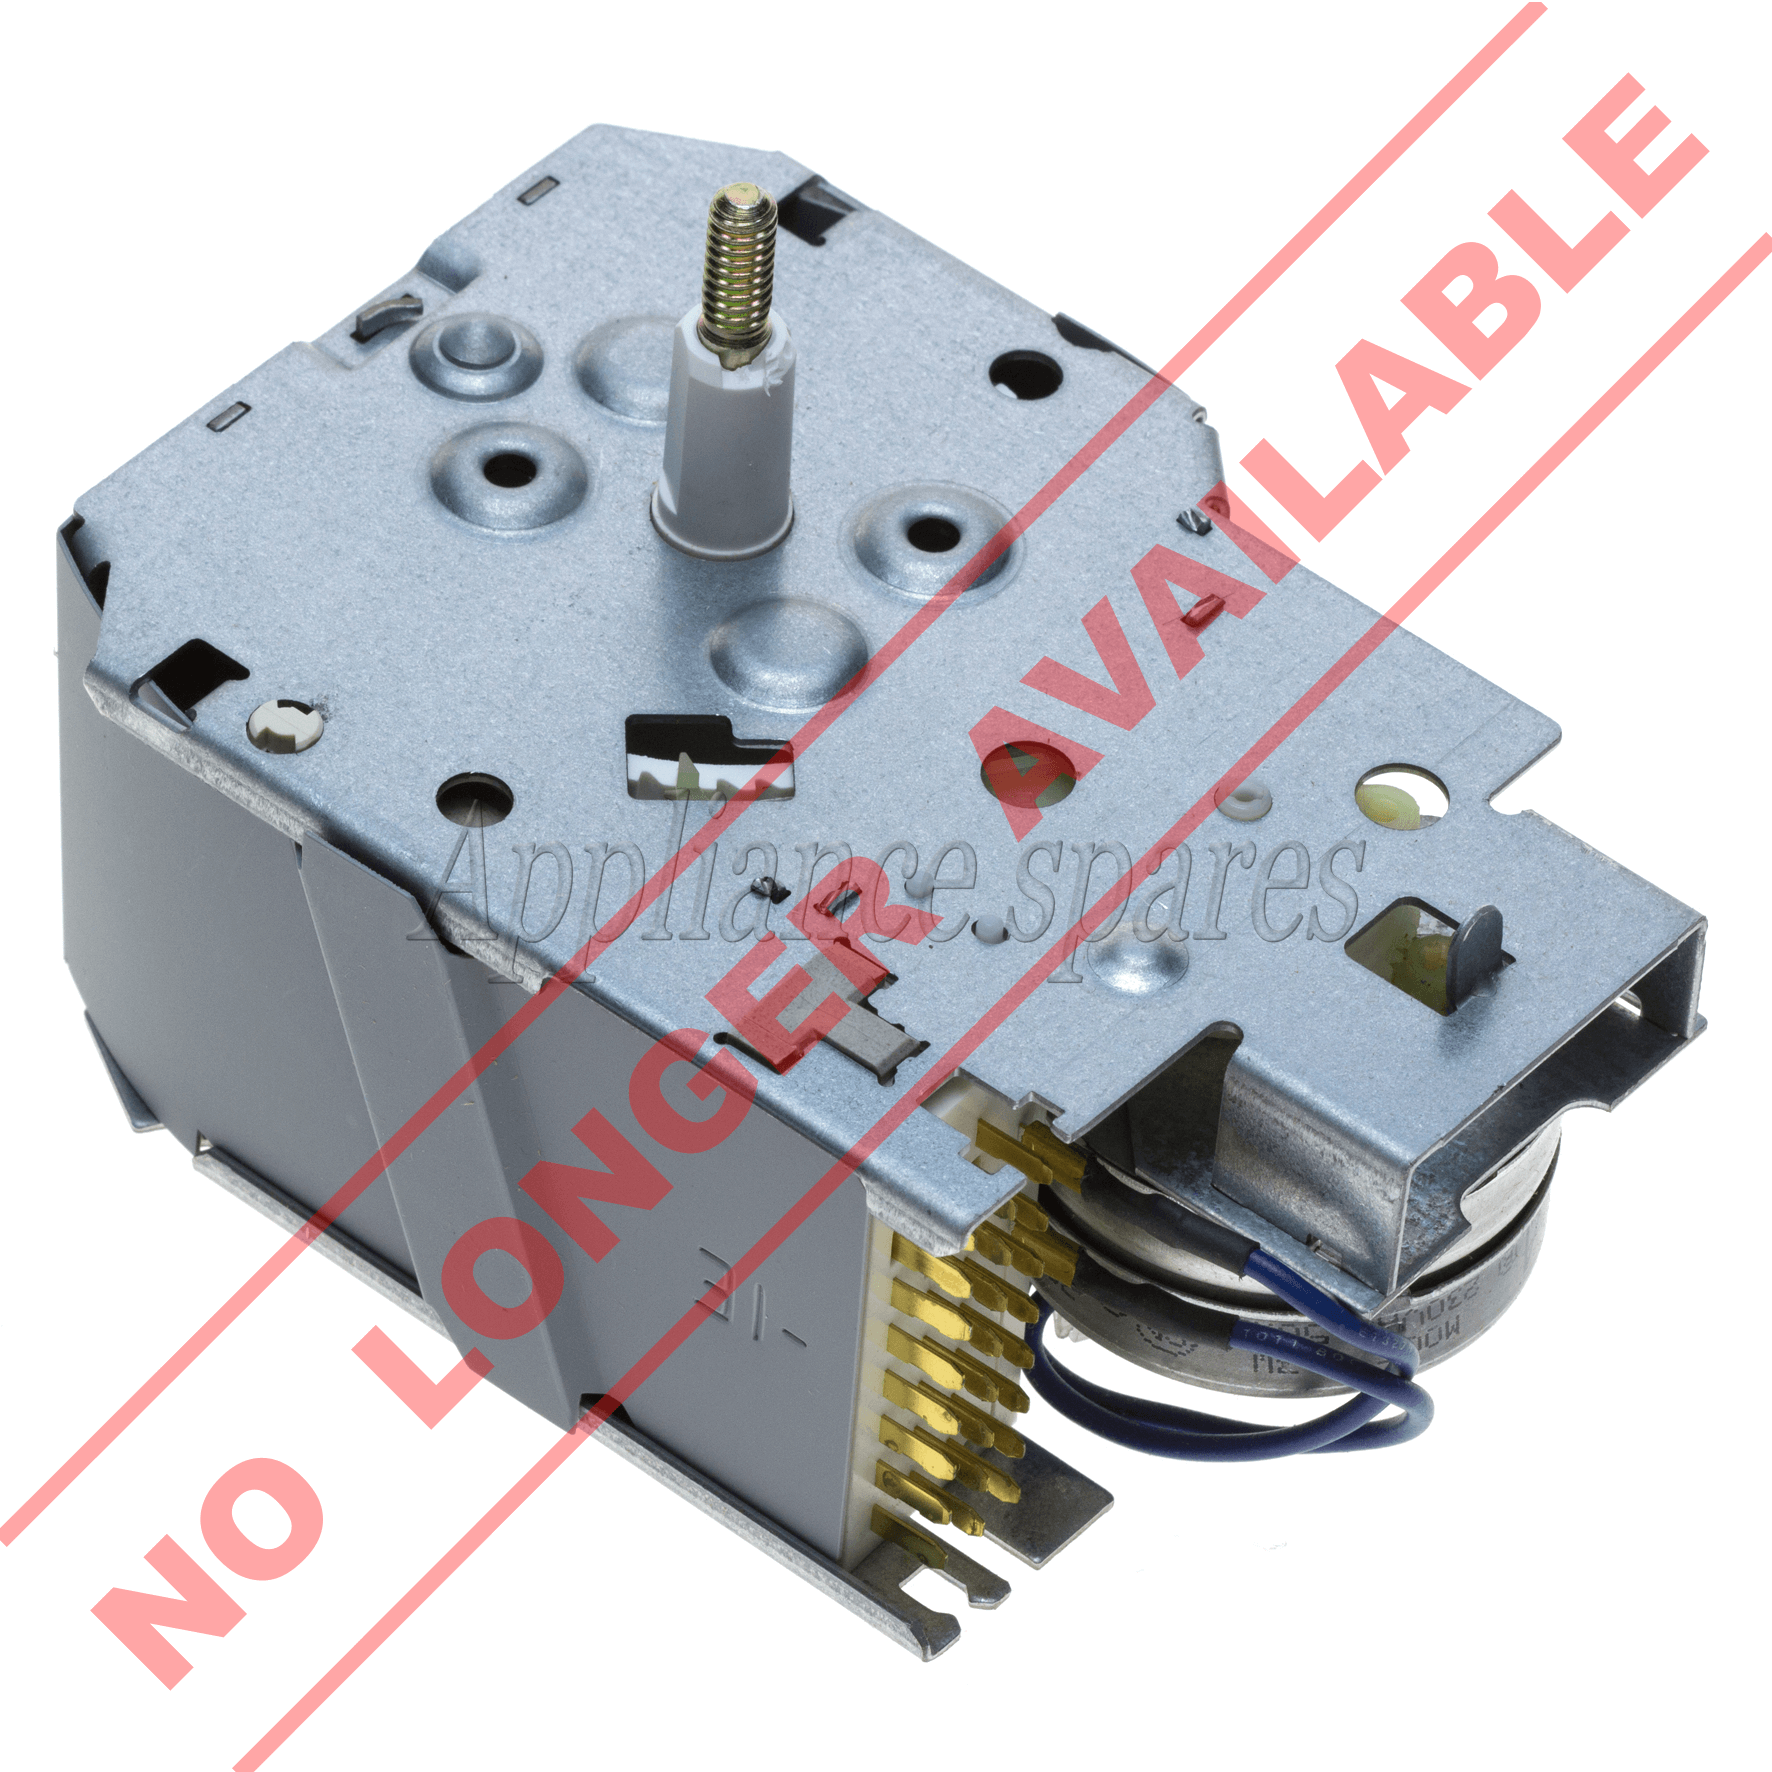 whirlpool top loader washing machine timer | lategan and van biljoens | appliance spares, parts ... dawlance washing machine wiring diagram